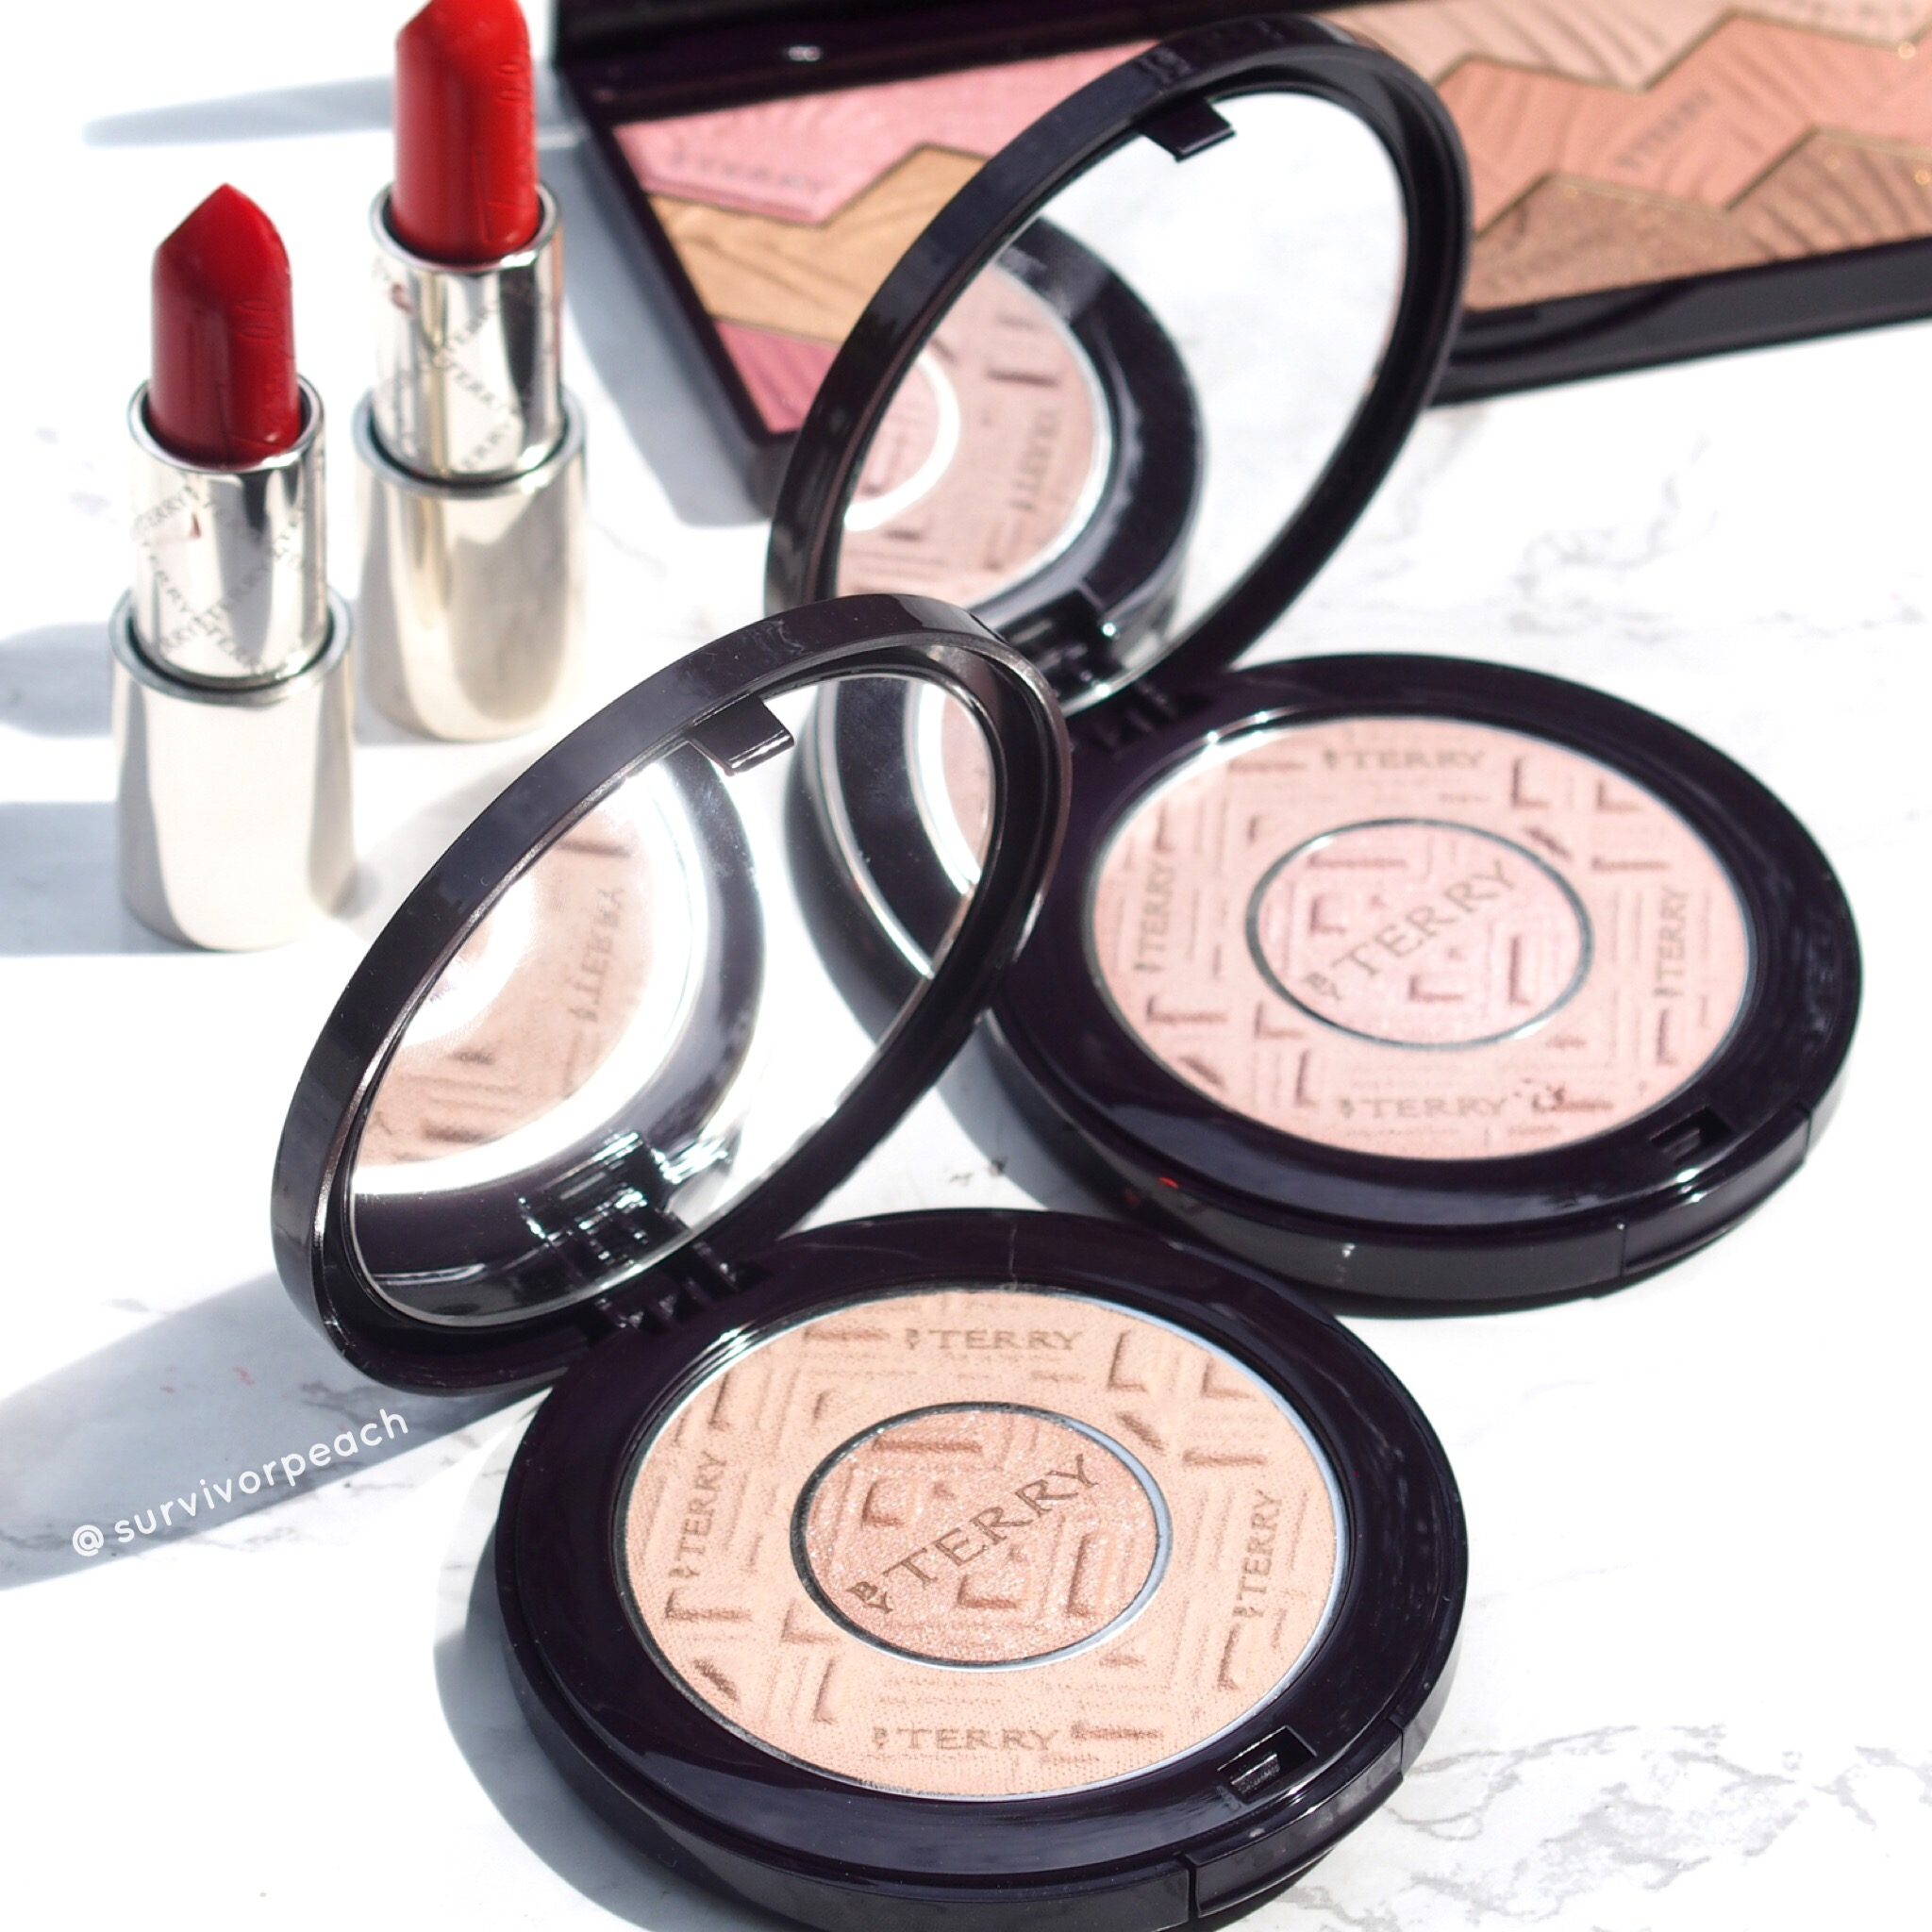 ByTerry Compact-Expert Dual Powder in Rosy Flush and Apricot Glow!